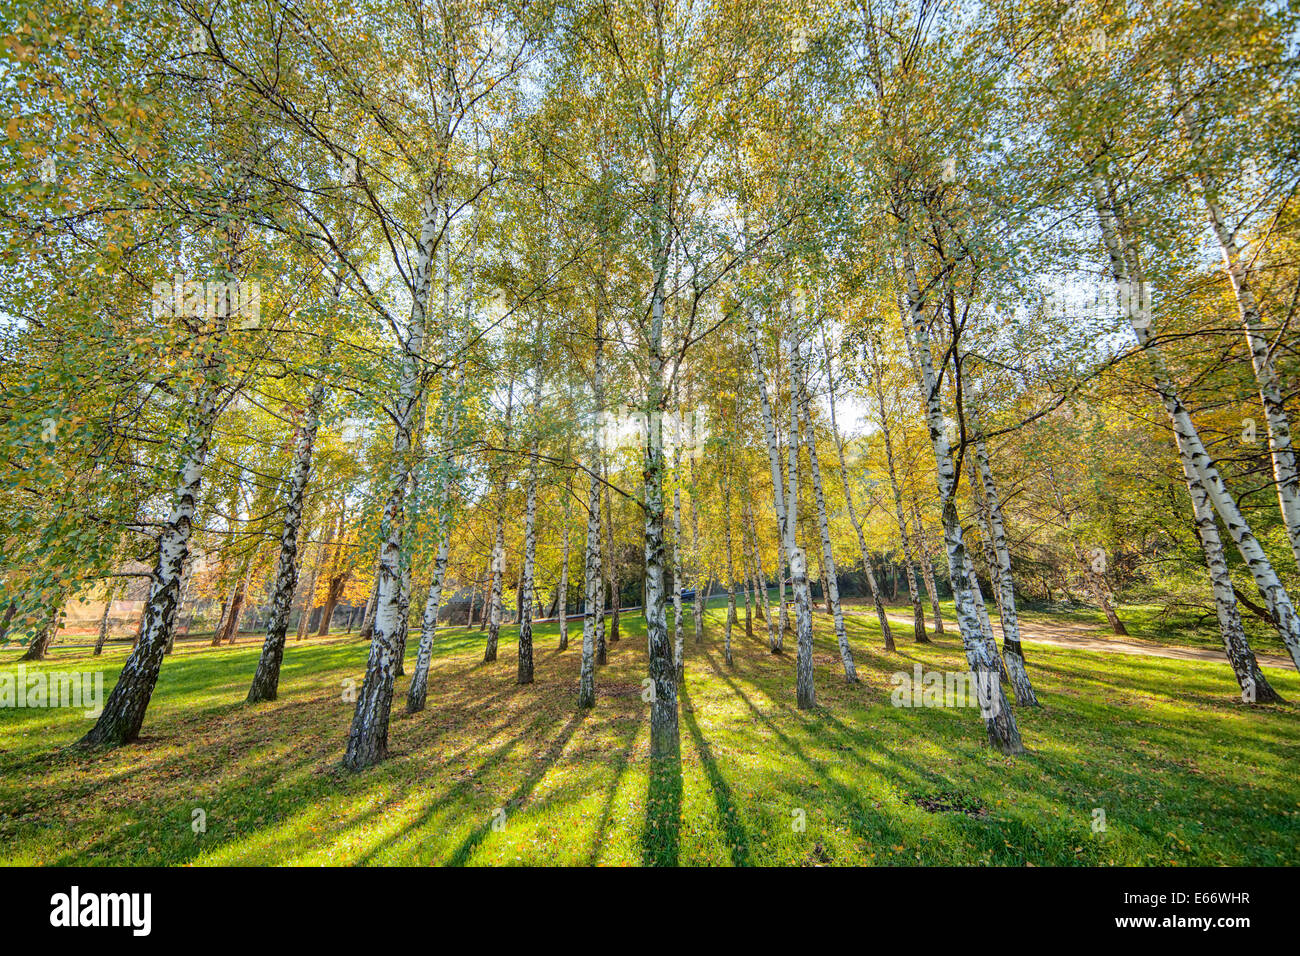 park with silver birch trees - Stock Image